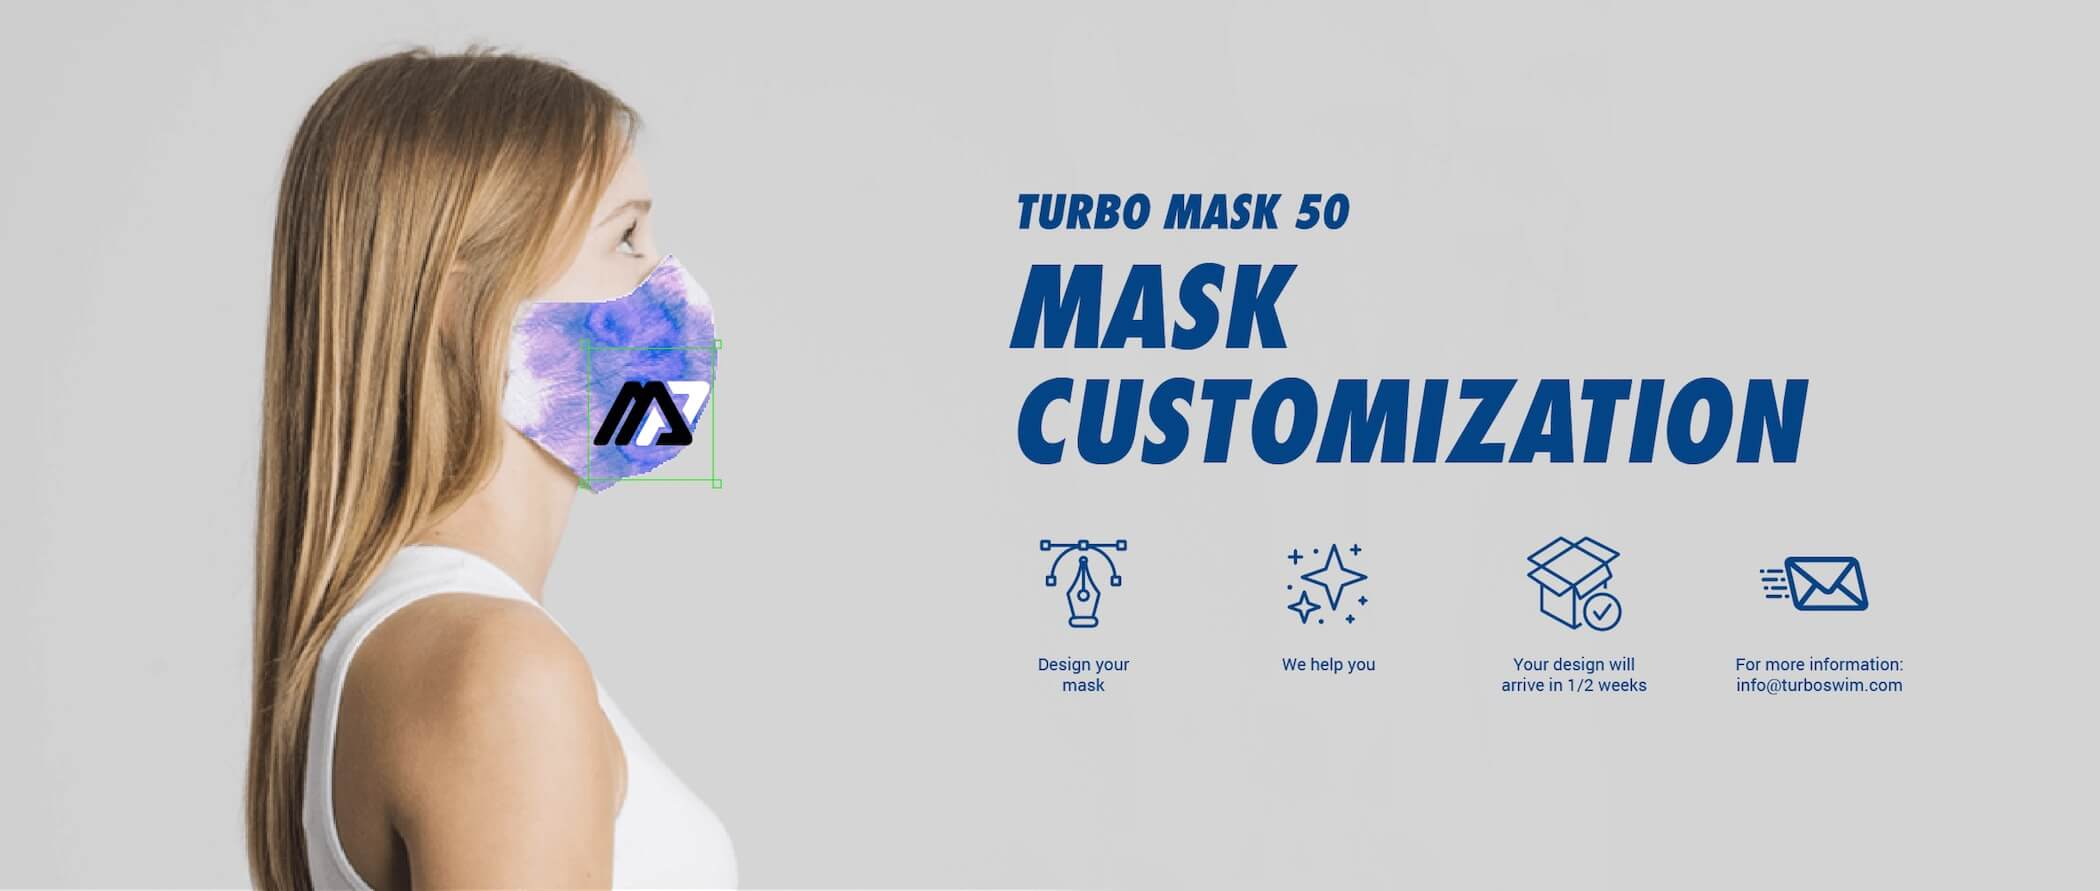 Turbo mask